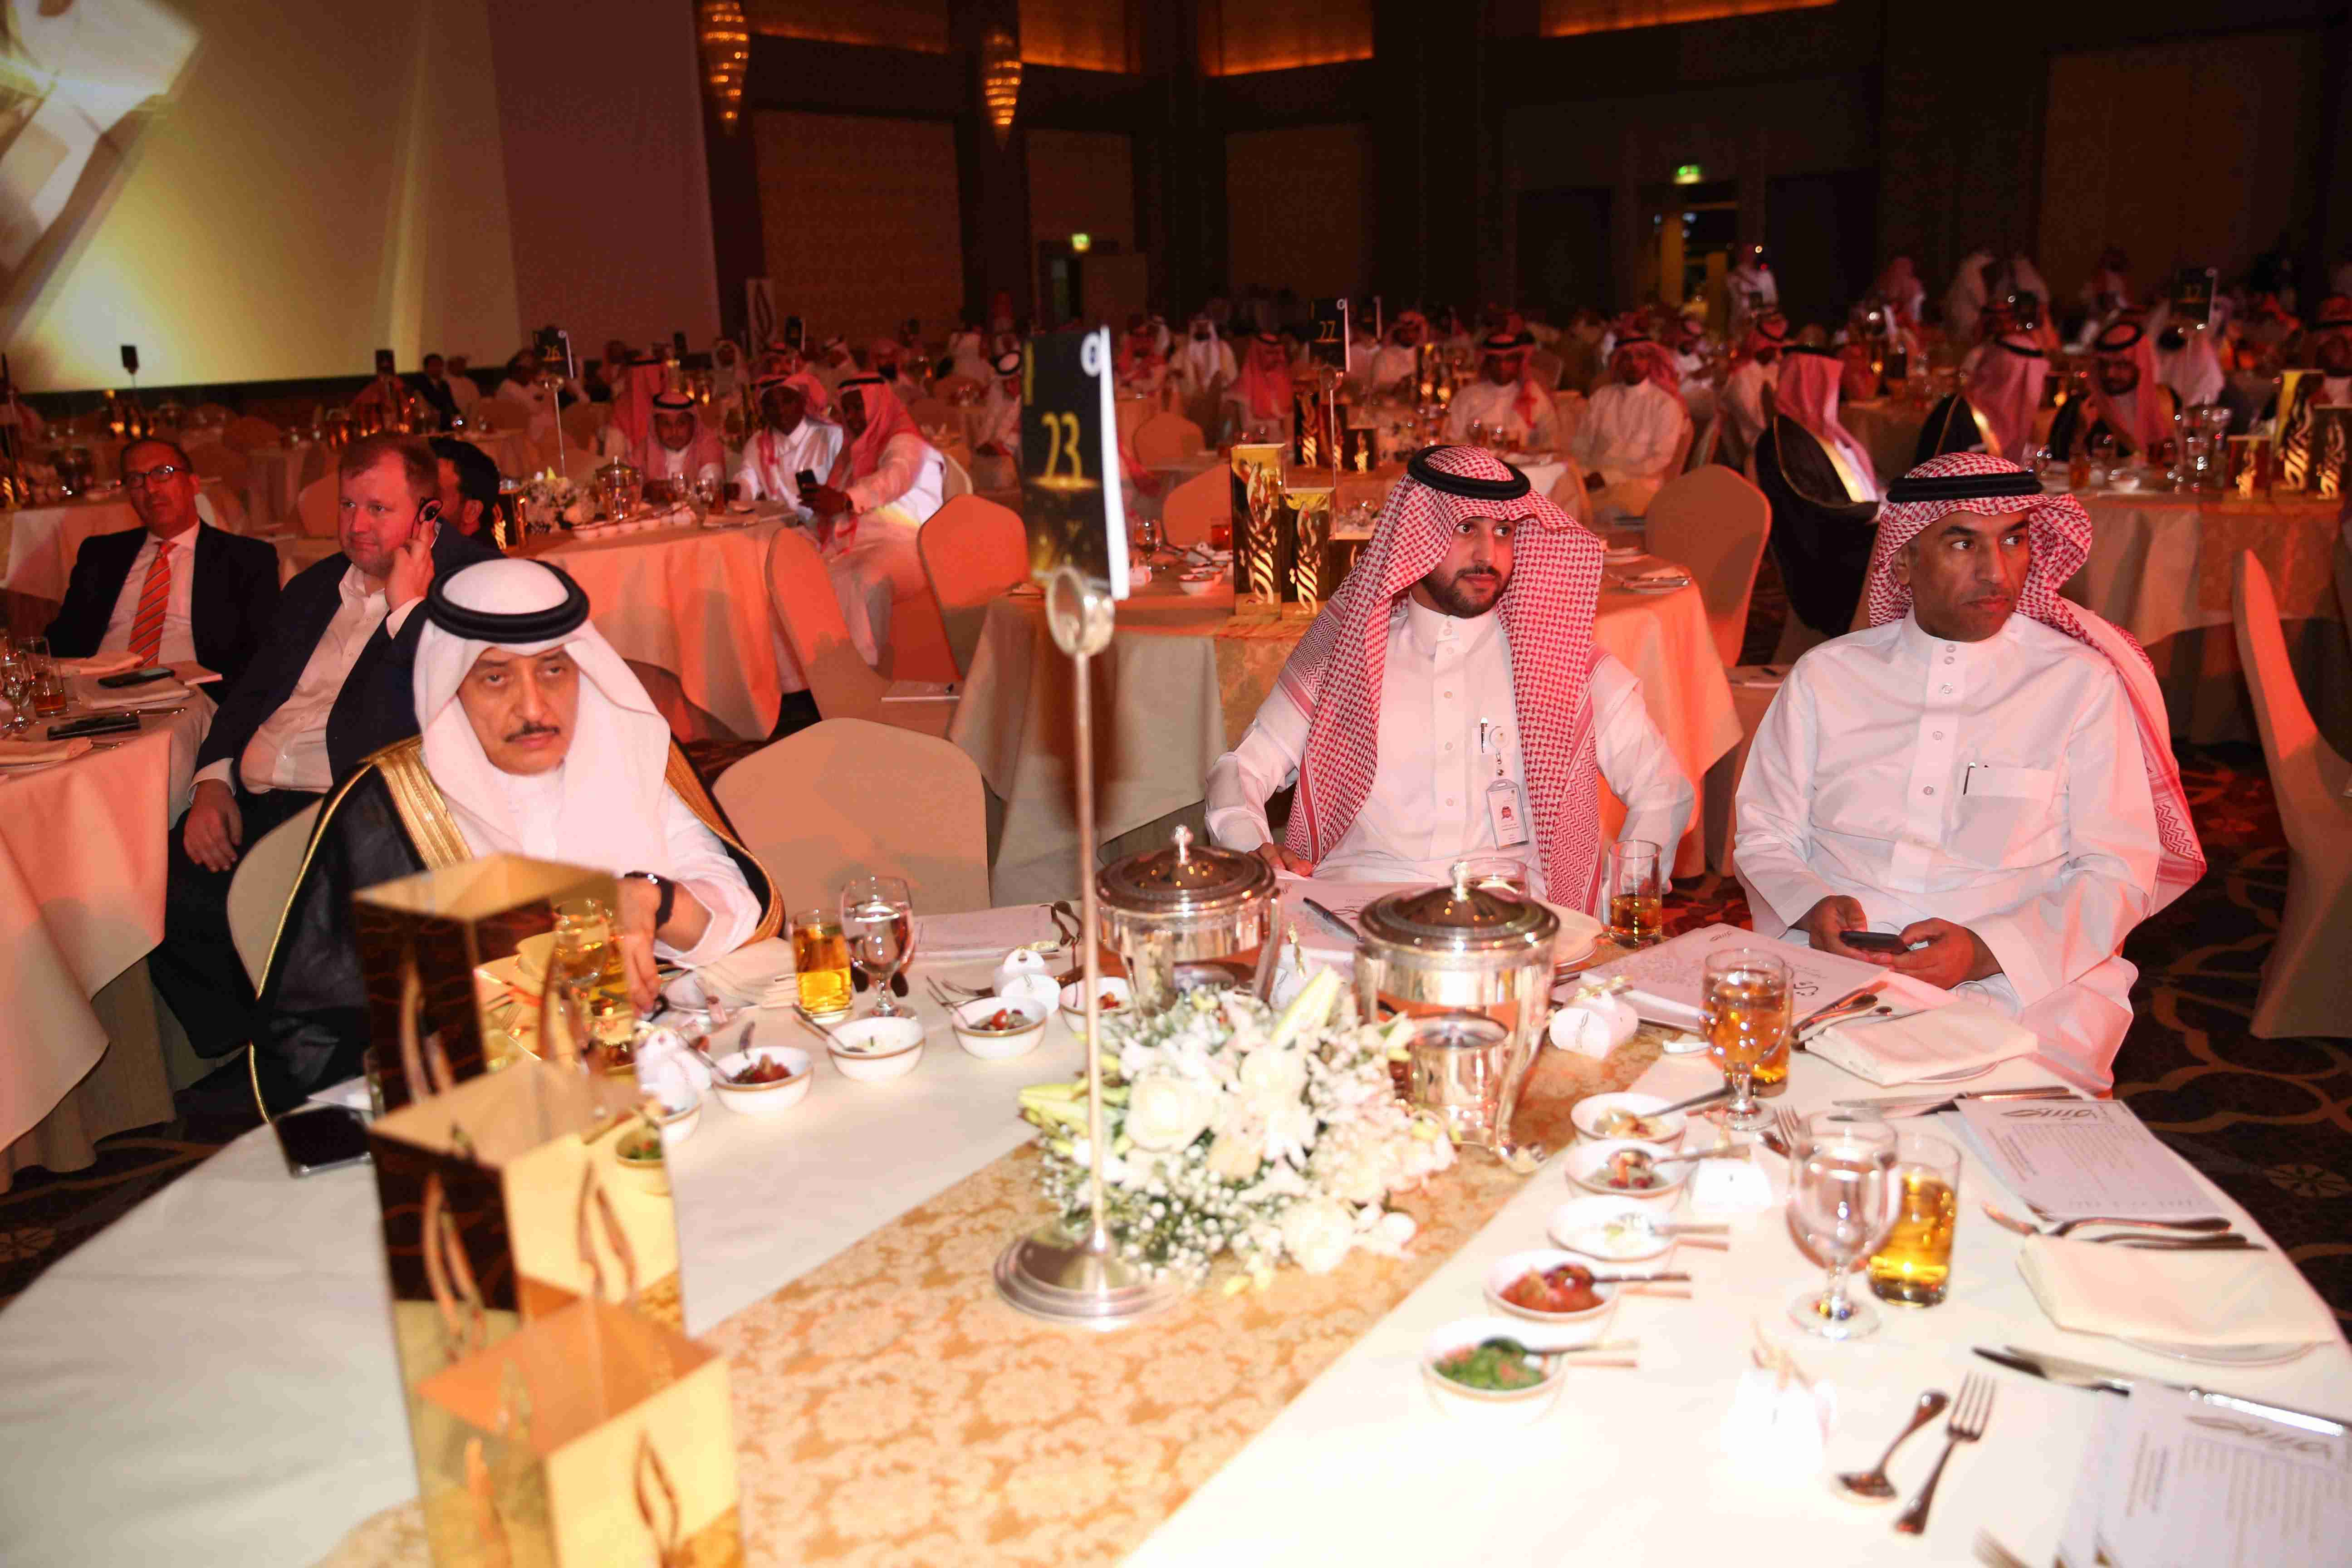 A ceremony to honor the winners with the Princess Seetah bint Abdulaziz Award for Excellence in Social Work